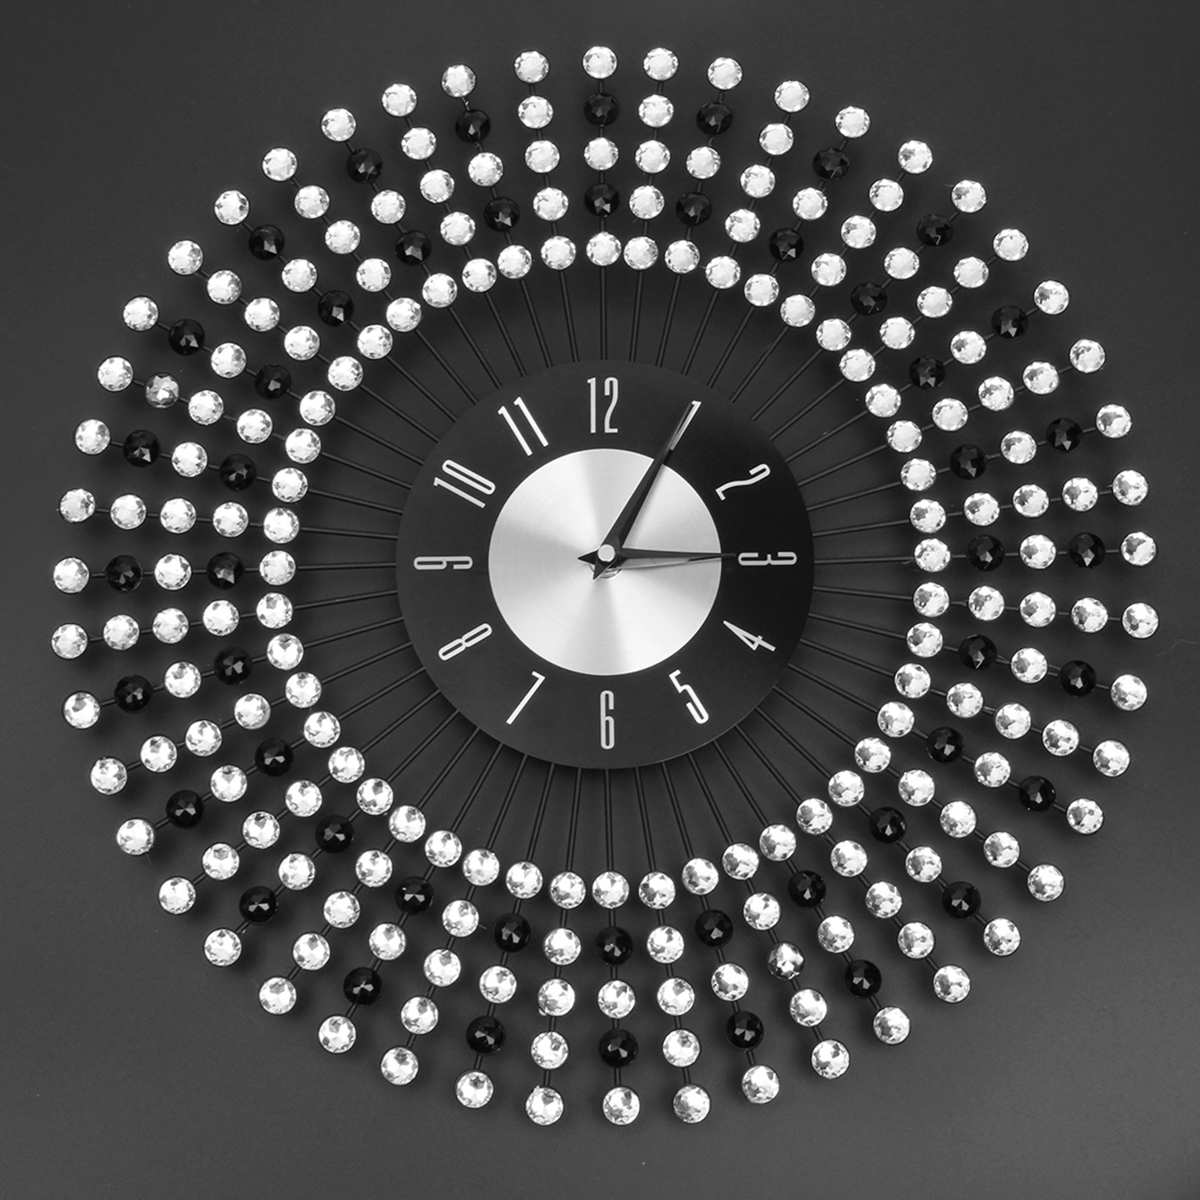 43CM Large 3D Diamond Wall Clock Watch For Home Living Room Decoration Morden Wall Clock Crafts Ornaments Gift